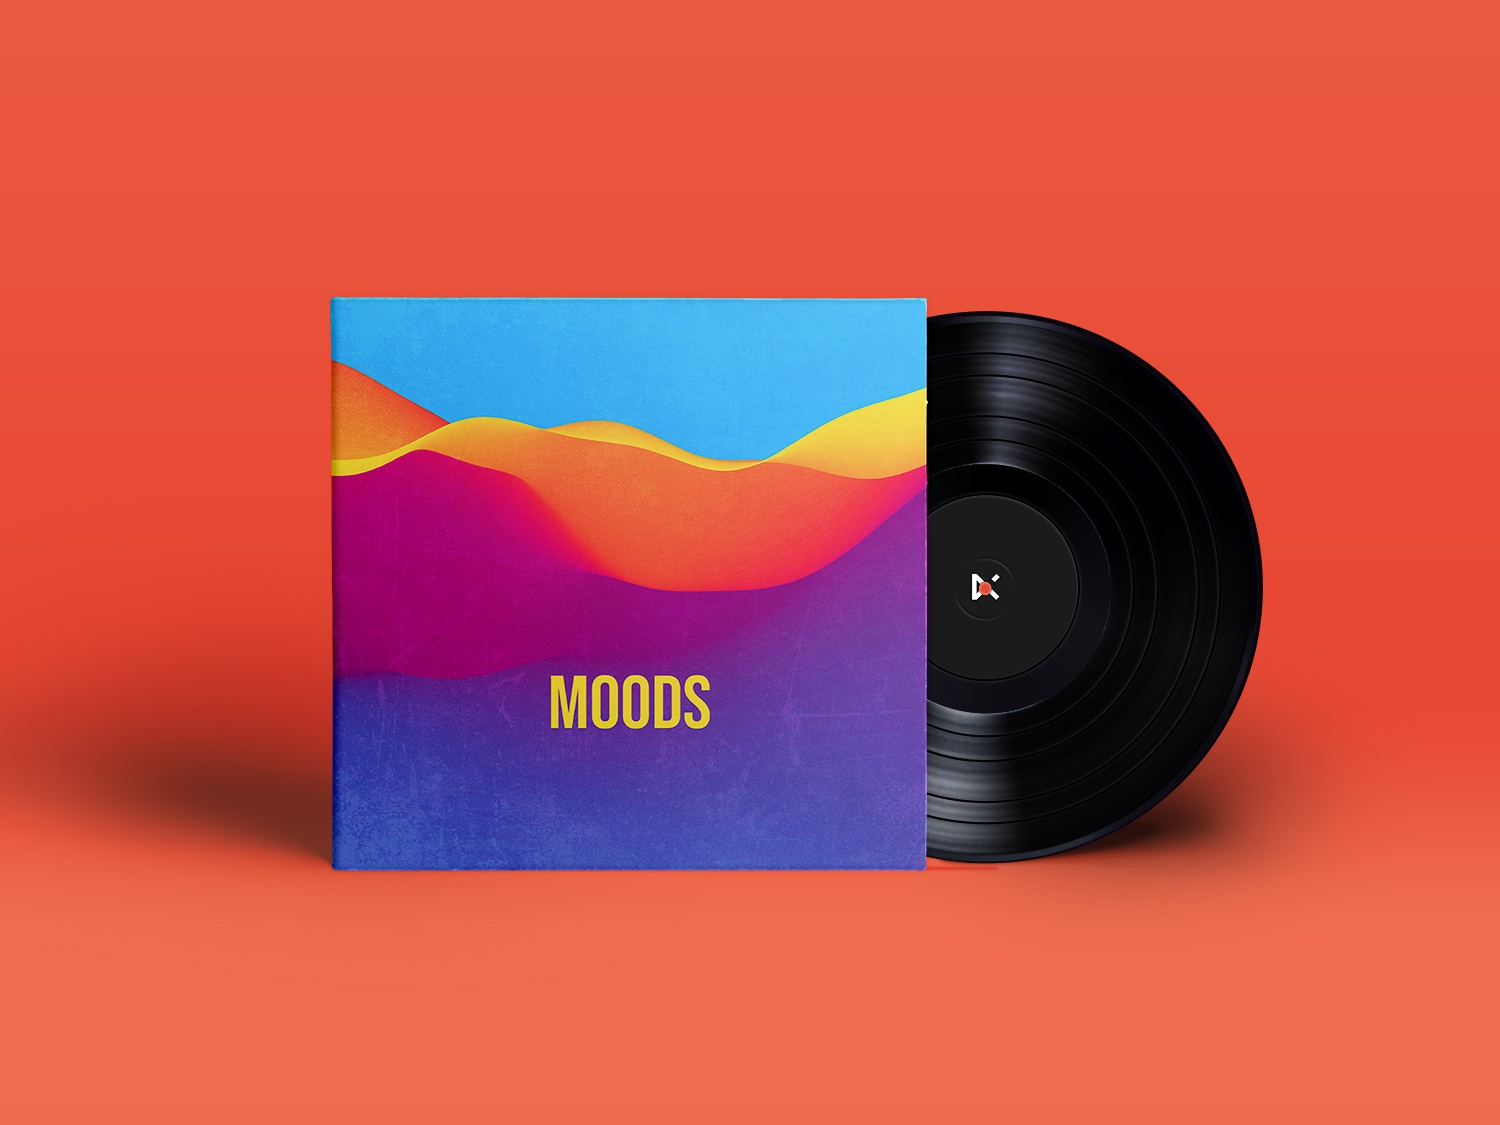 Moods design type typography vinyl colour visual concept artwork art music